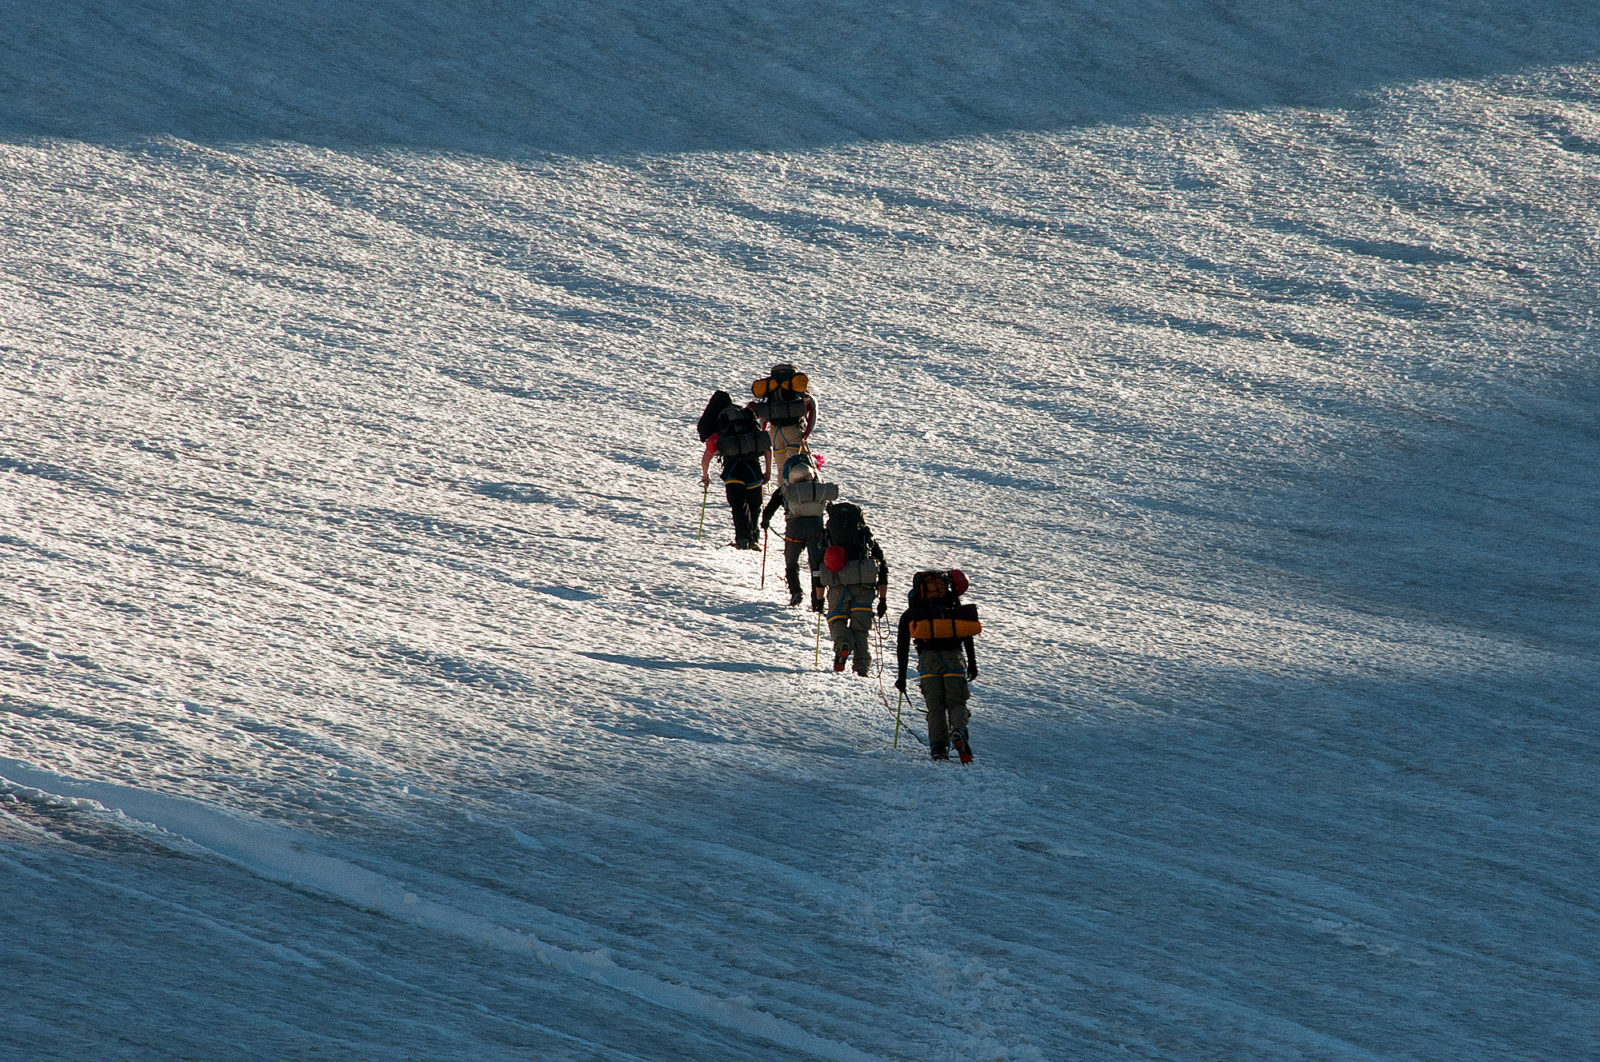 Climbers on the Inter Glacier